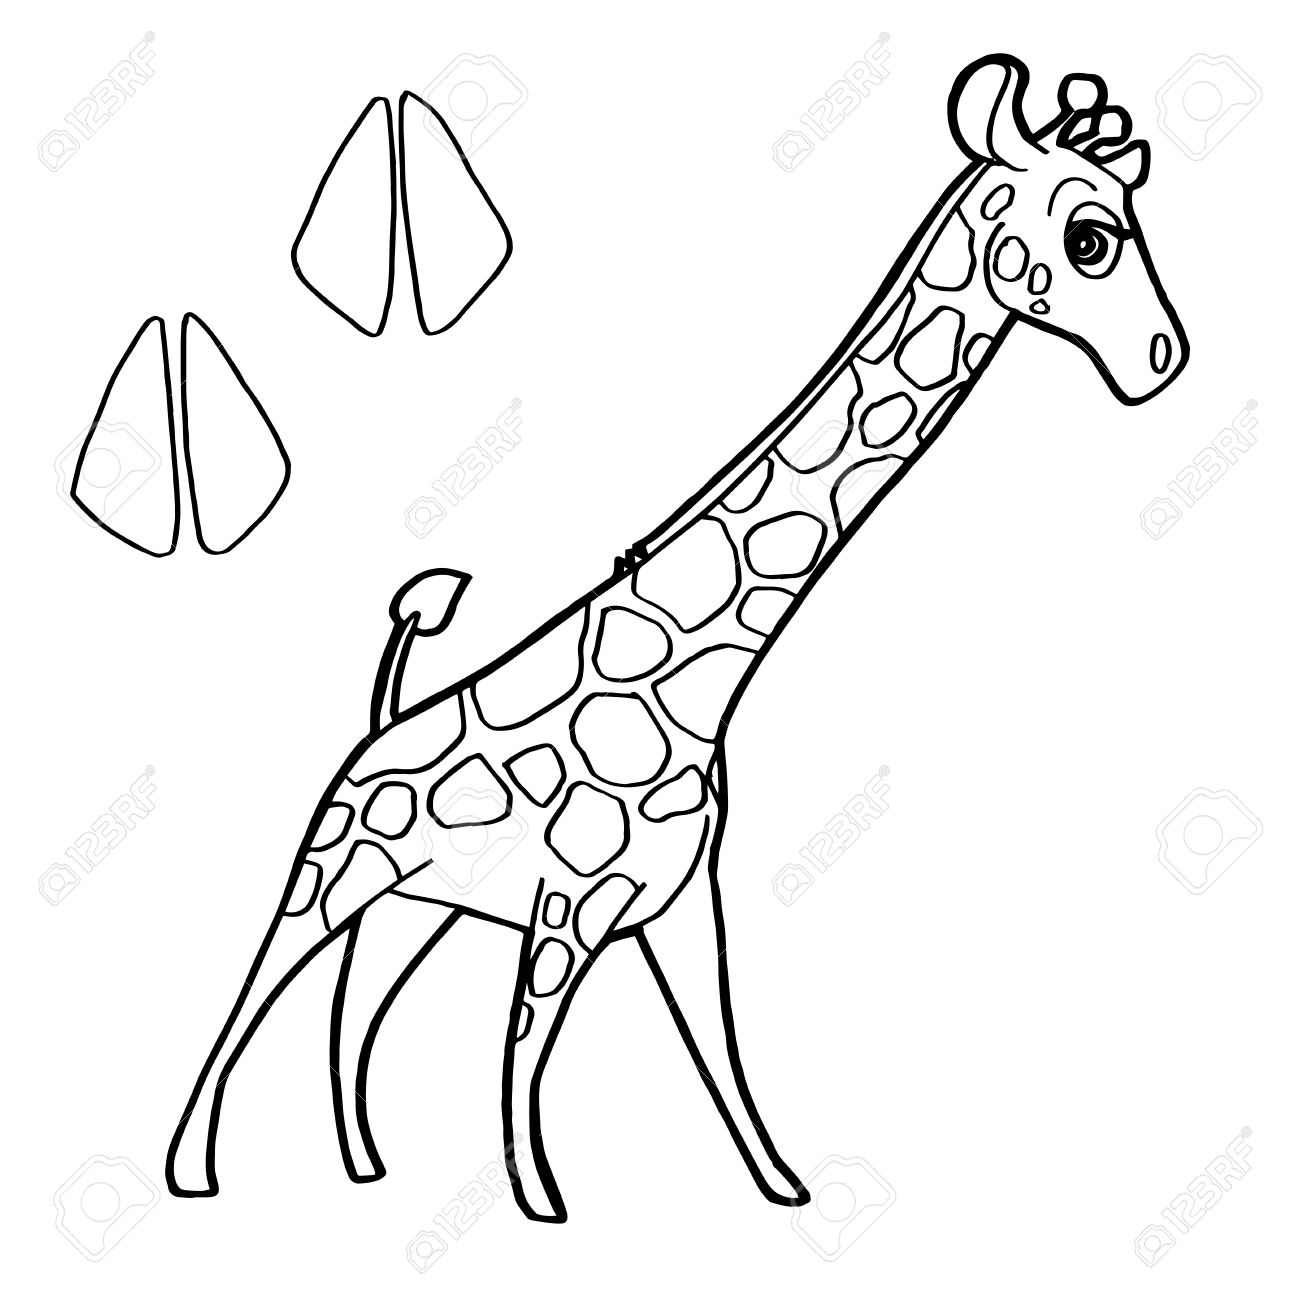 Paw Print With Giraffe Coloring Pages Vector Royalty Free Cliparts ...